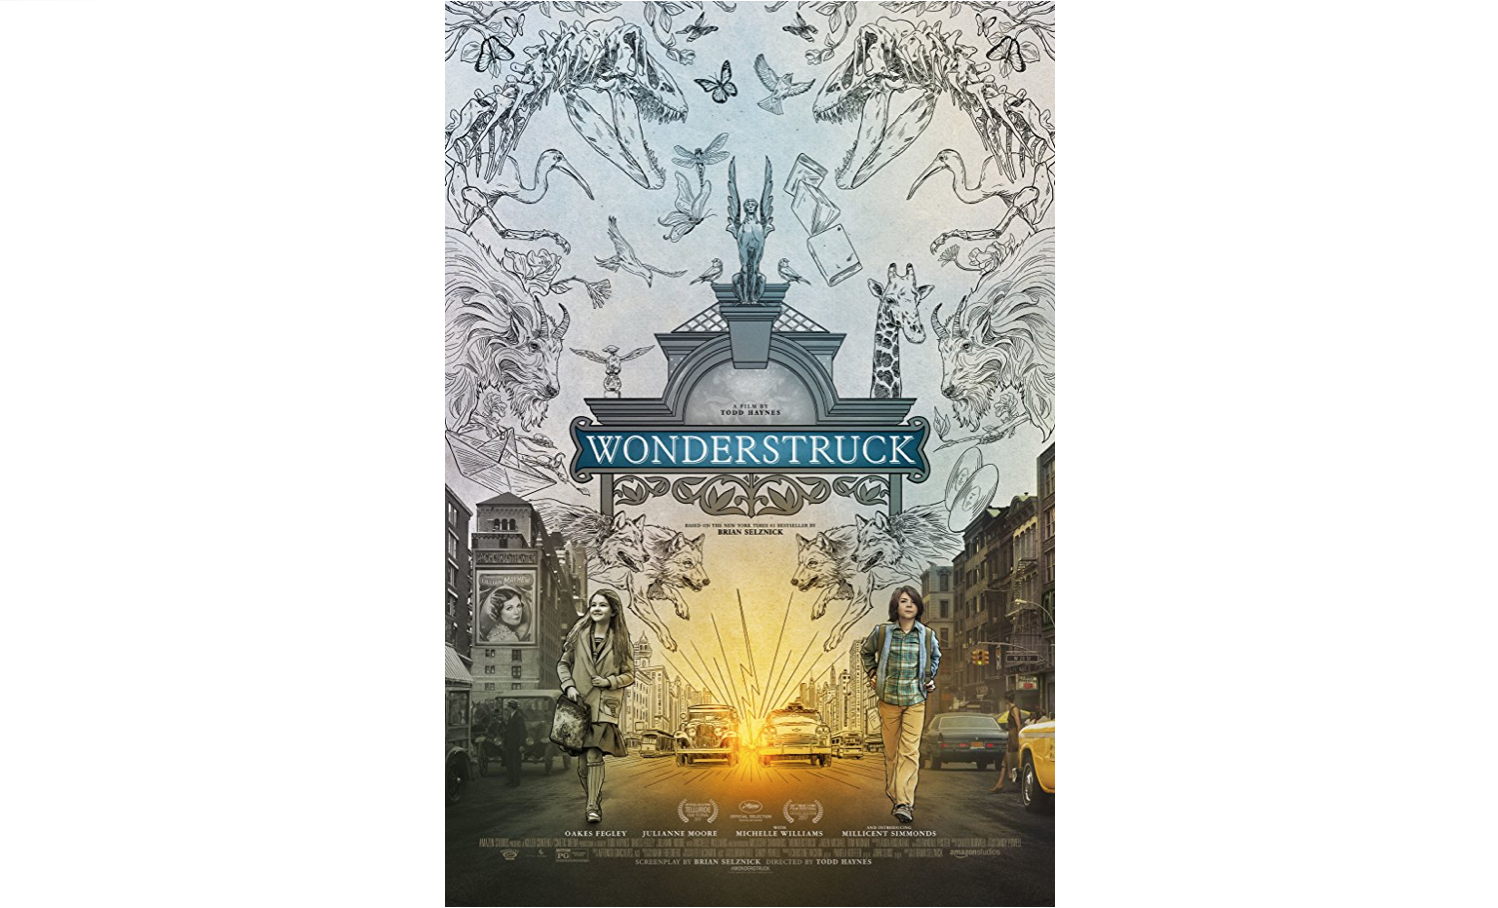 Wonderstruck Slider Image